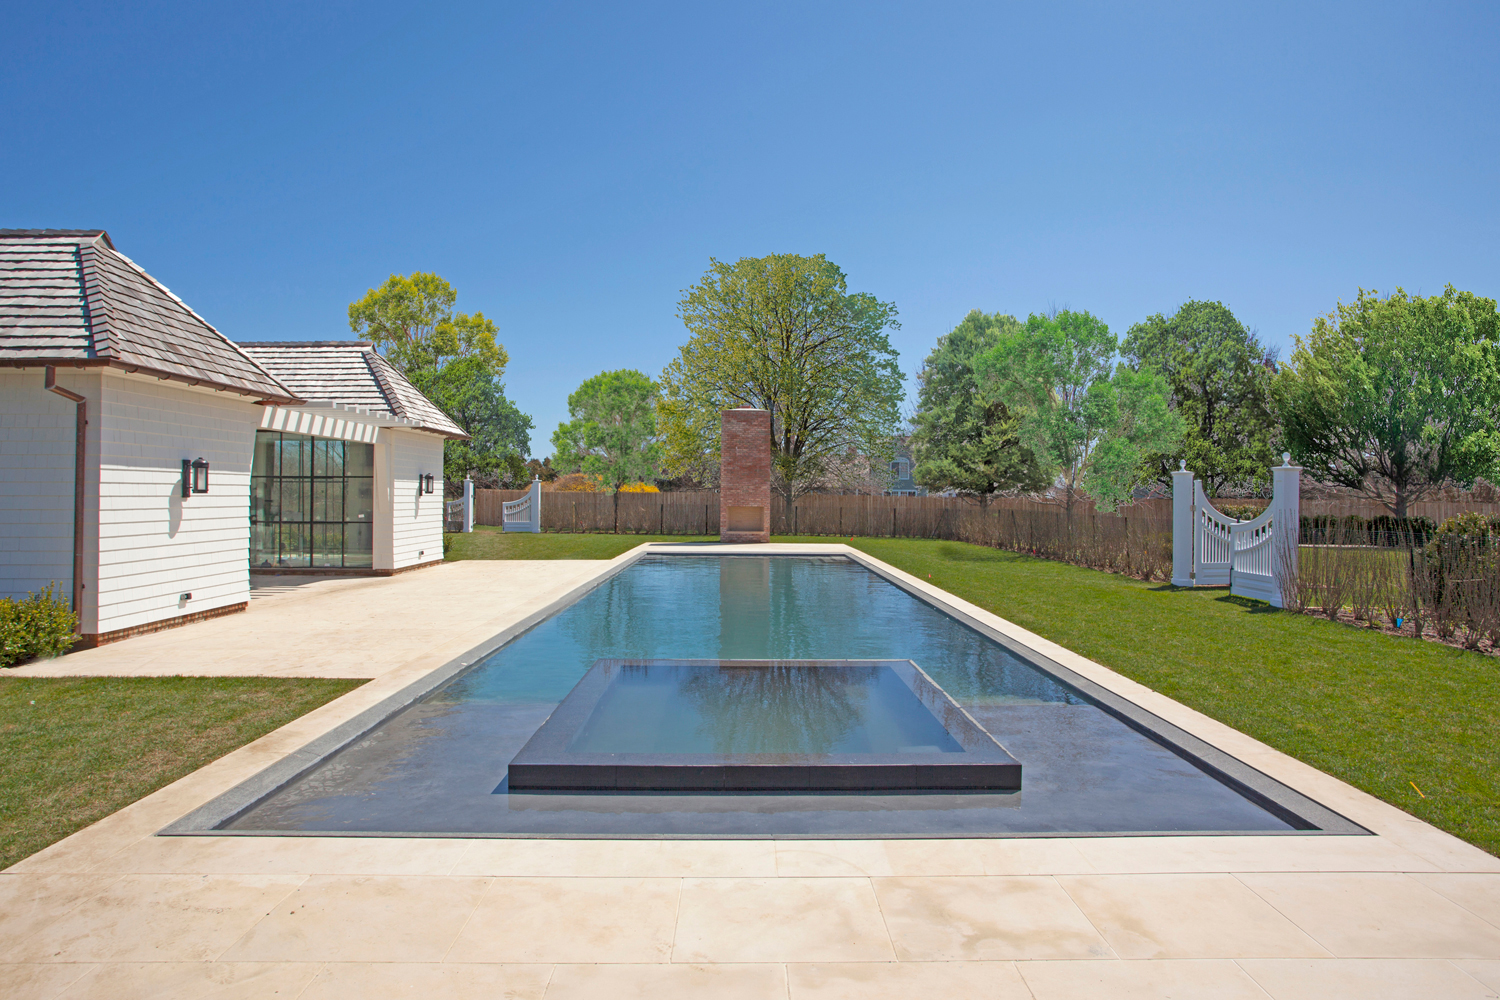 <span>pool house, heated gunite infinity edge pool</span><span  class='incontracts'>IN CONTRACT </span>